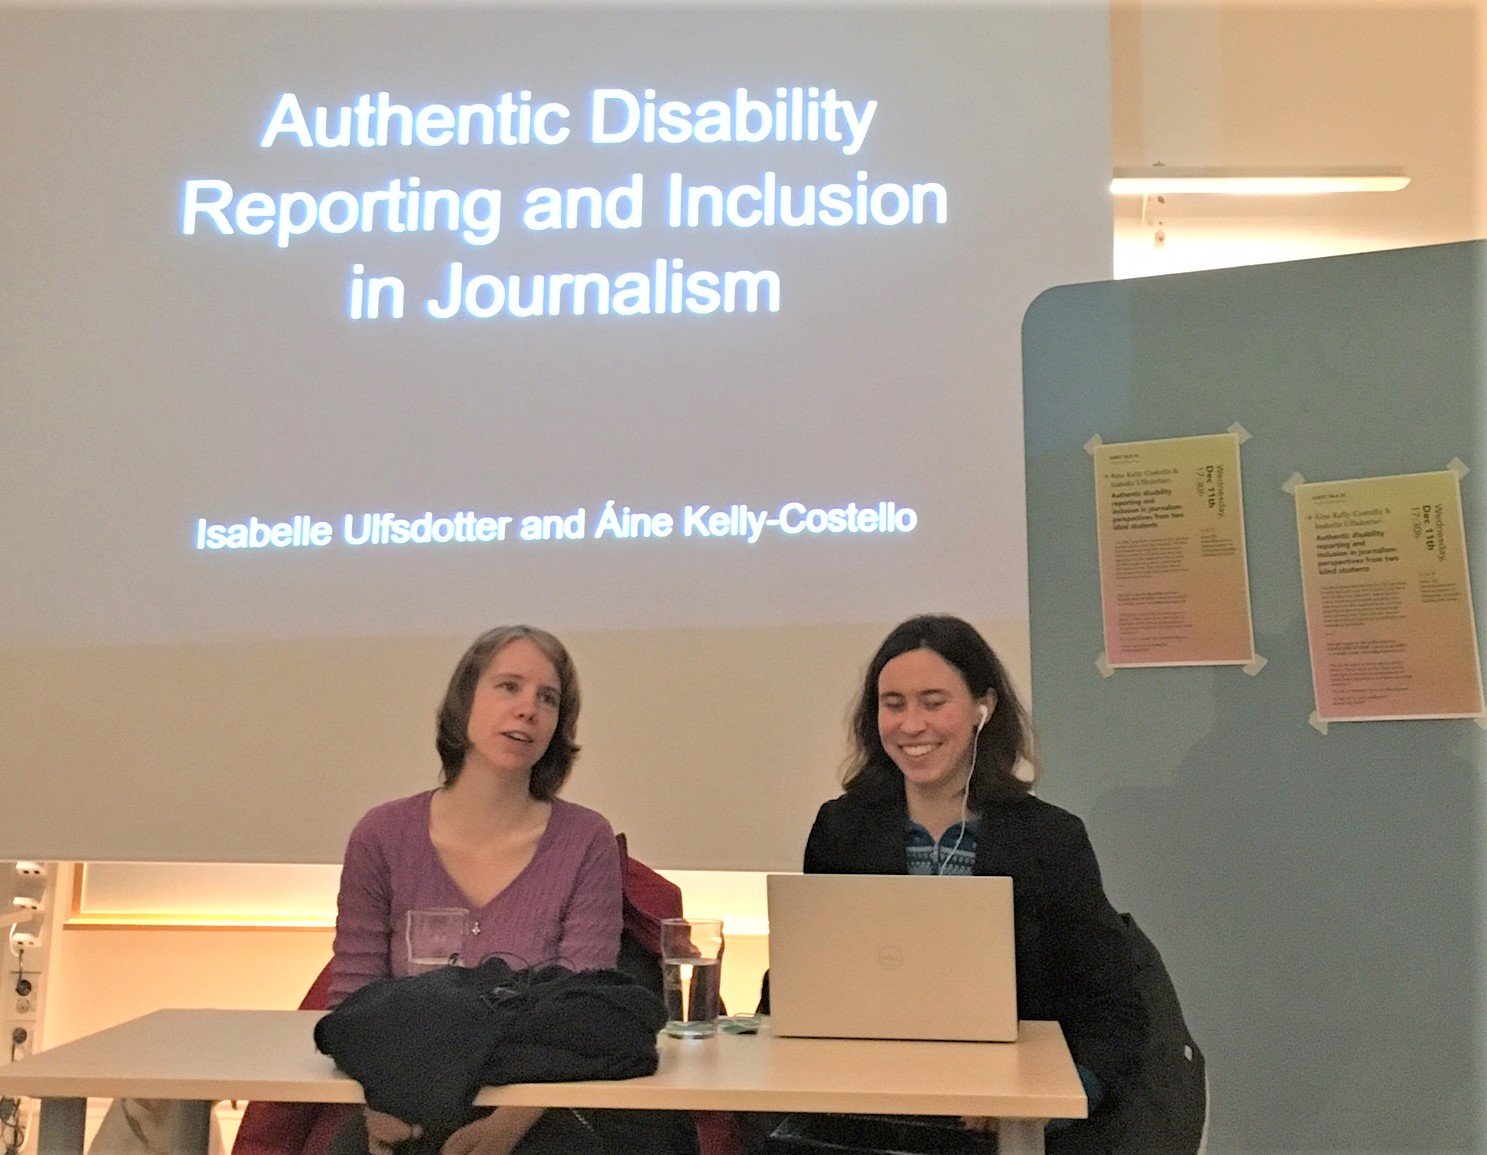 Isabelle and I sit in front of a powerpoint slide, entitled: Authentic Disability Reporting and Inclusion in Journalism